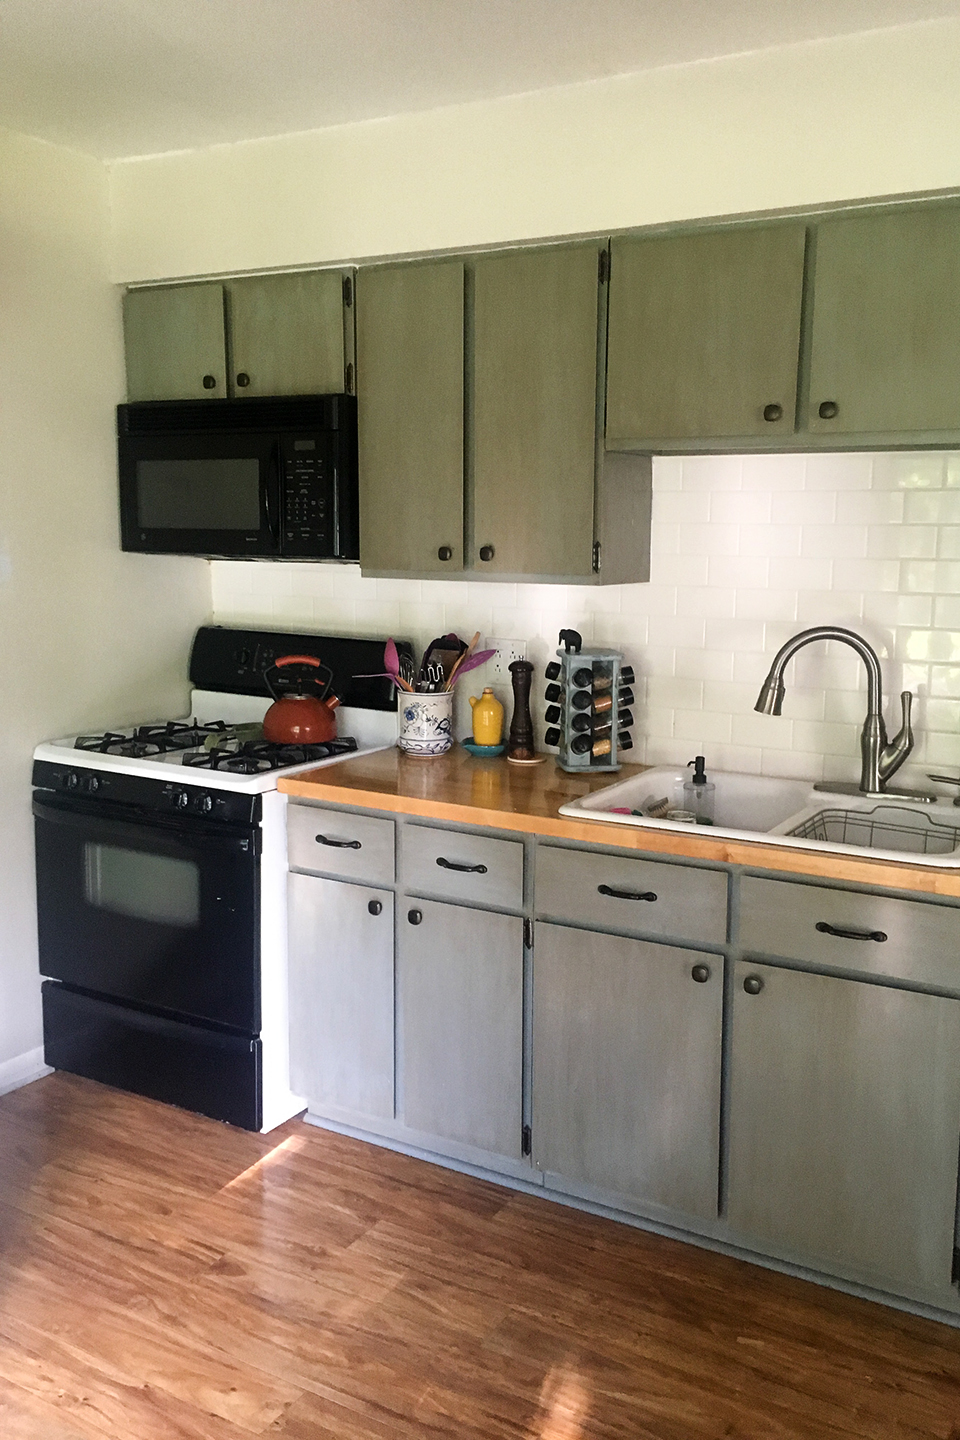 Kitchen Remodel On A Budget 5 Low Cost Ideas To Help You Spend Less